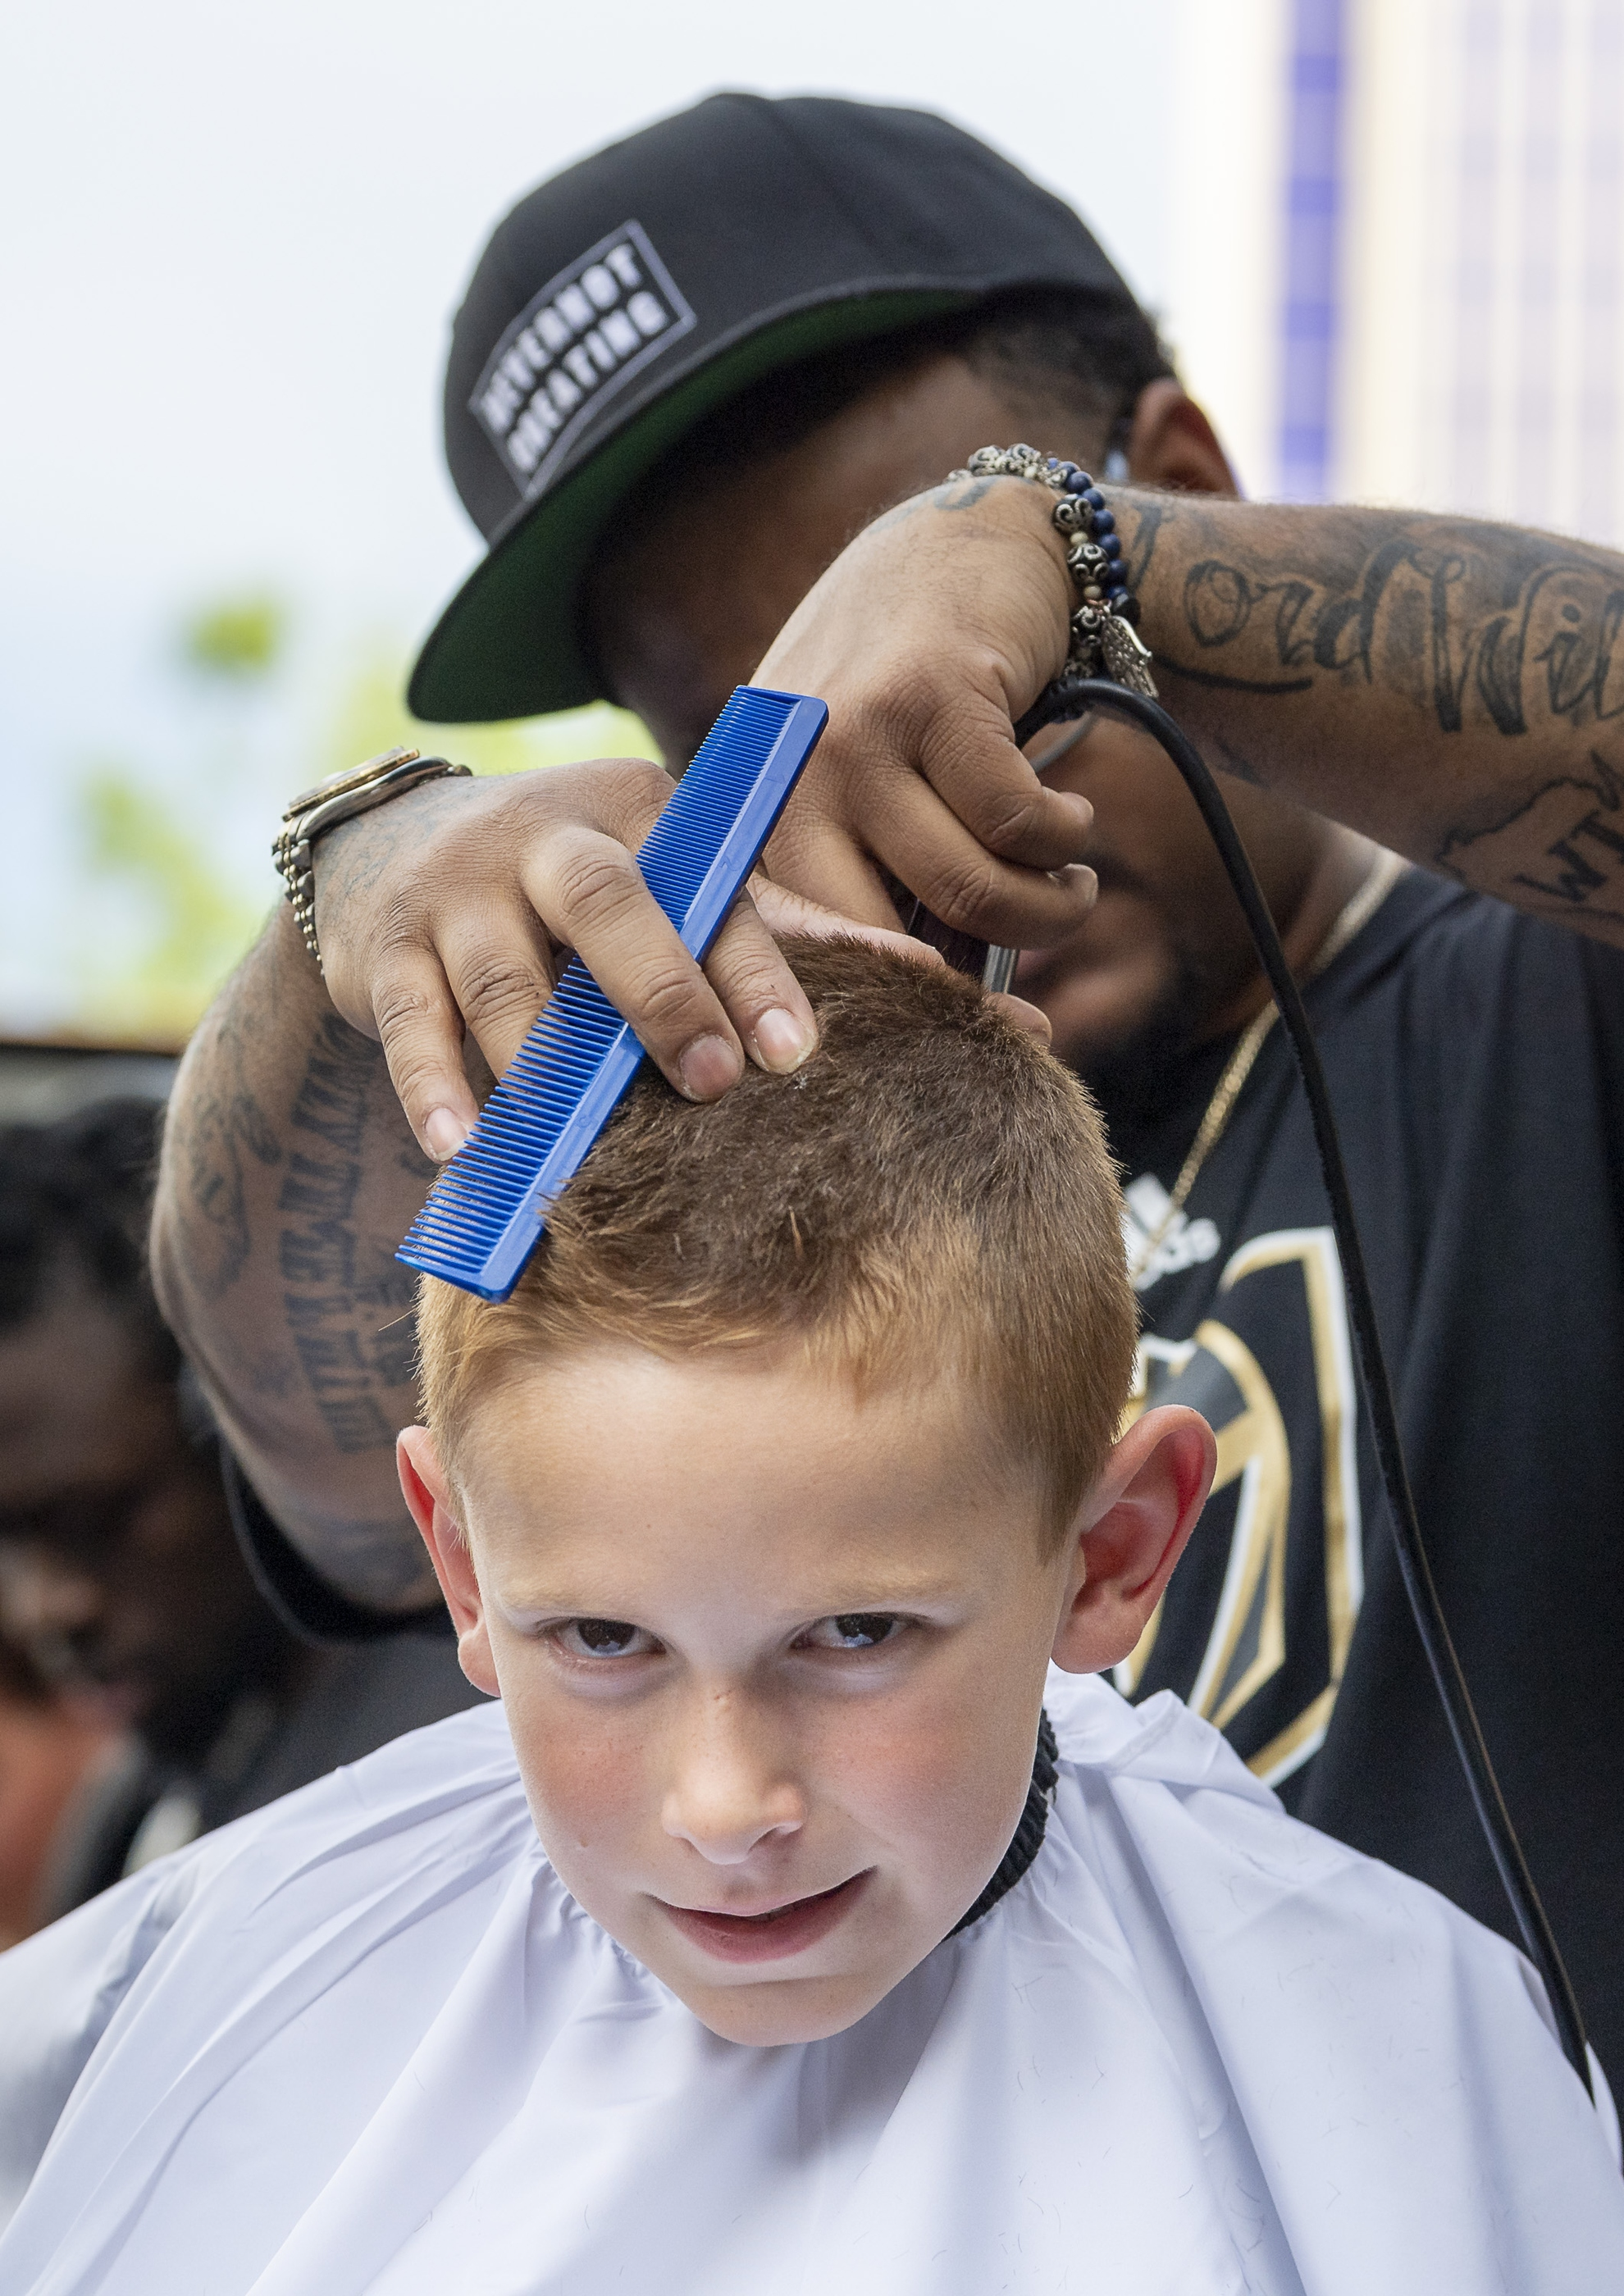 "Eight year-old Landon Lythgoe of Las Vegas has the trademark ""V"" shaved into his scalp as part of the pre-game celebration in Toshiba Plaza as the Vegas Golden Knights prepare to meet the Los Angeles Kings in the first quarterfinal game of the NHL Stanley Cup Playoffs at T-Mobile Arena in Las Vegas on Wednesday, April 11, 2018.  CREDIT: Mark Damon/Las Vegas News Bureau"